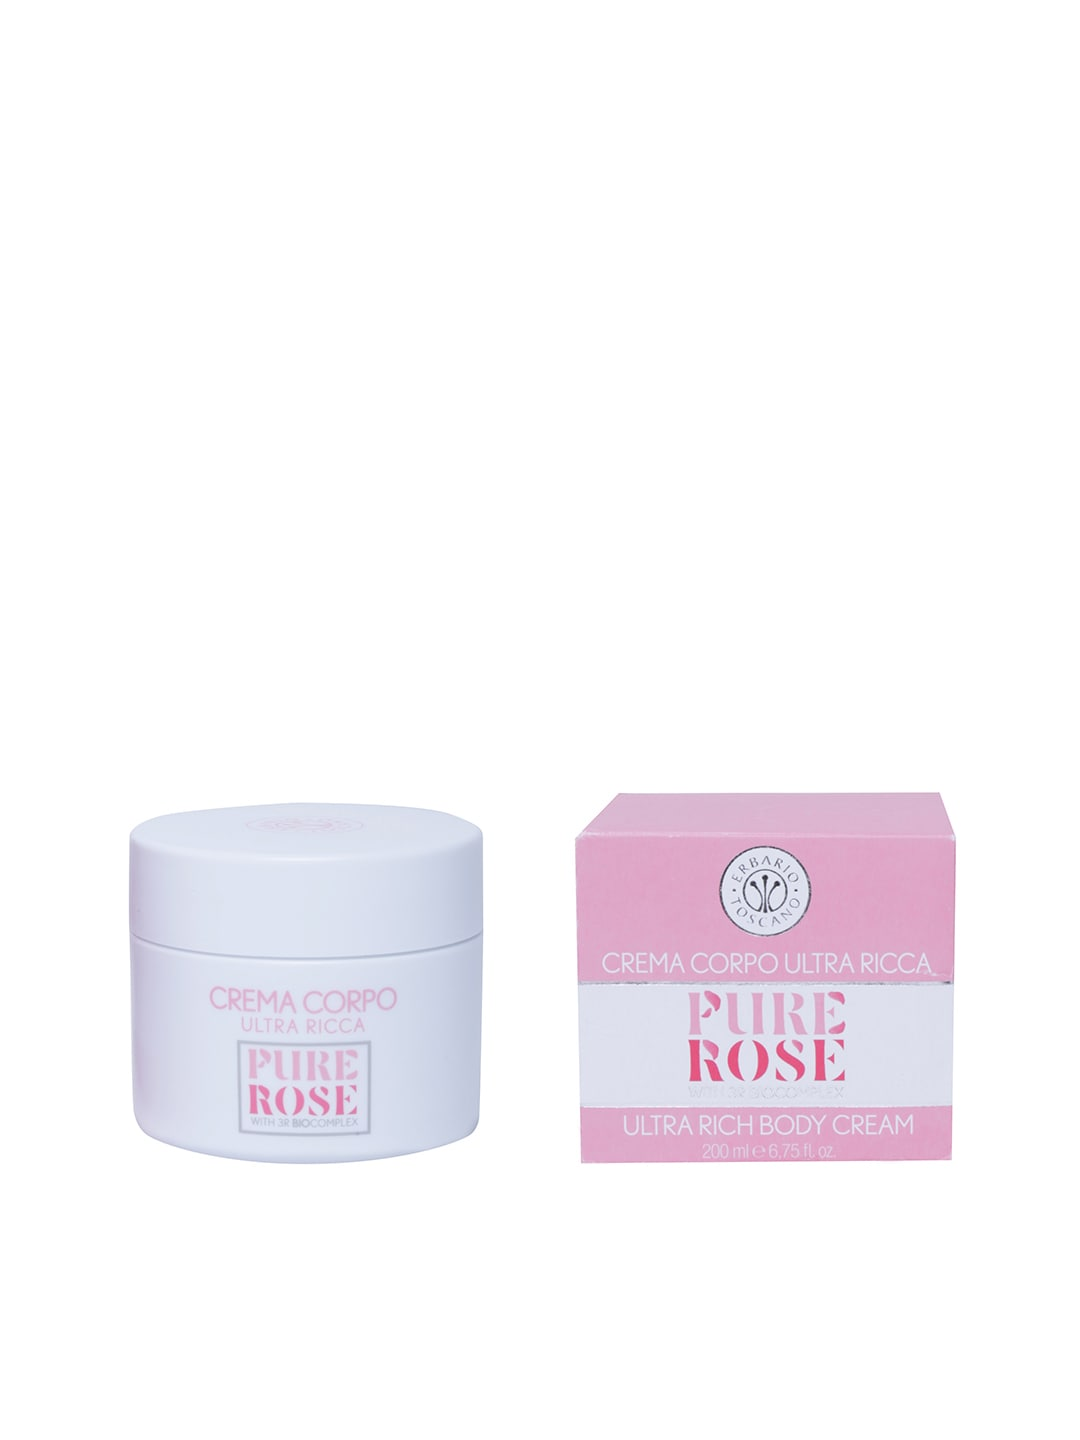 ERBARIO TOSCANO Pure Rose Ultra Rich Body Cream image